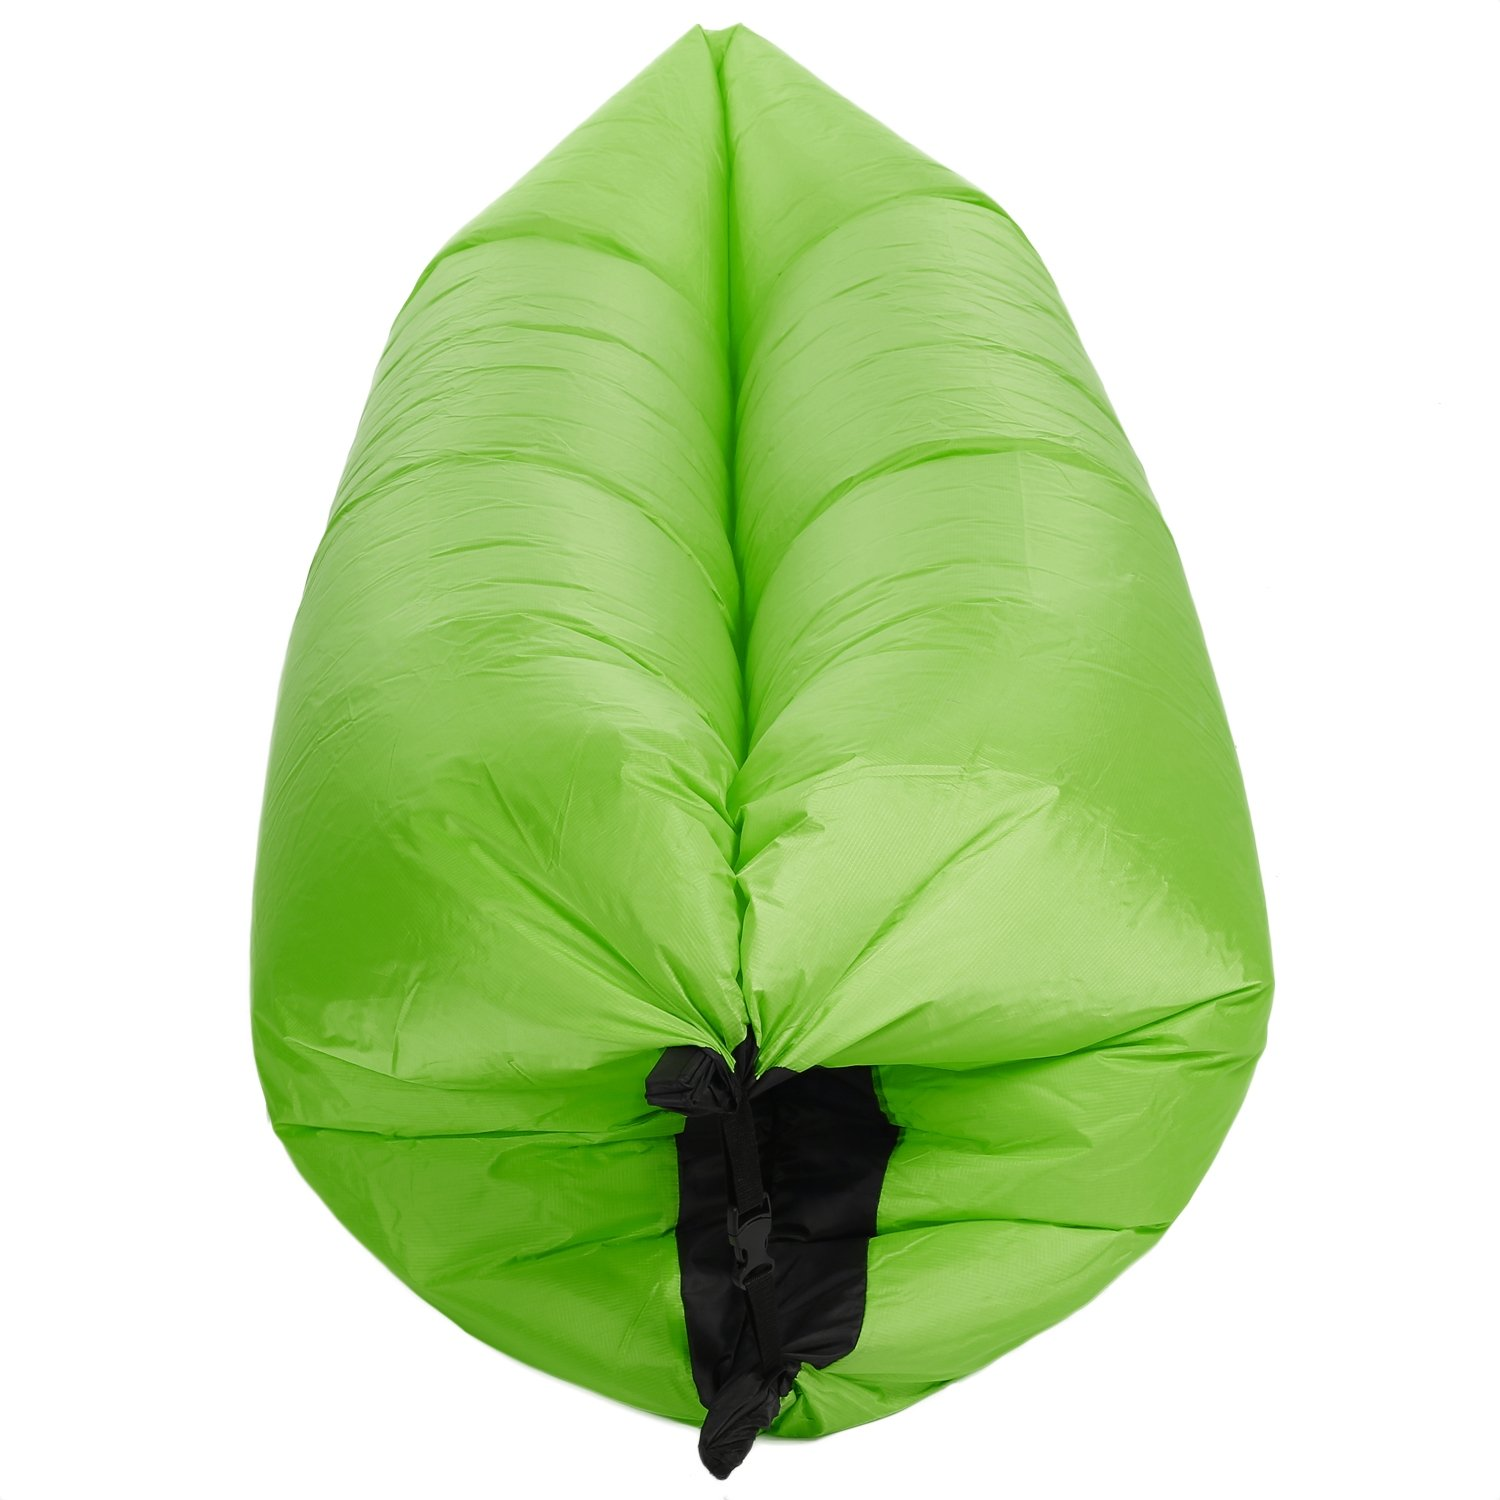 Fashine Outdoor Portable Lazy Inflatable Couch Air Sleeping Sofa Lounger Bag Multifunctional Camping Bed For 4 Season Park, Camping, Hiking, Beach, Backyard (US Stock) (green)